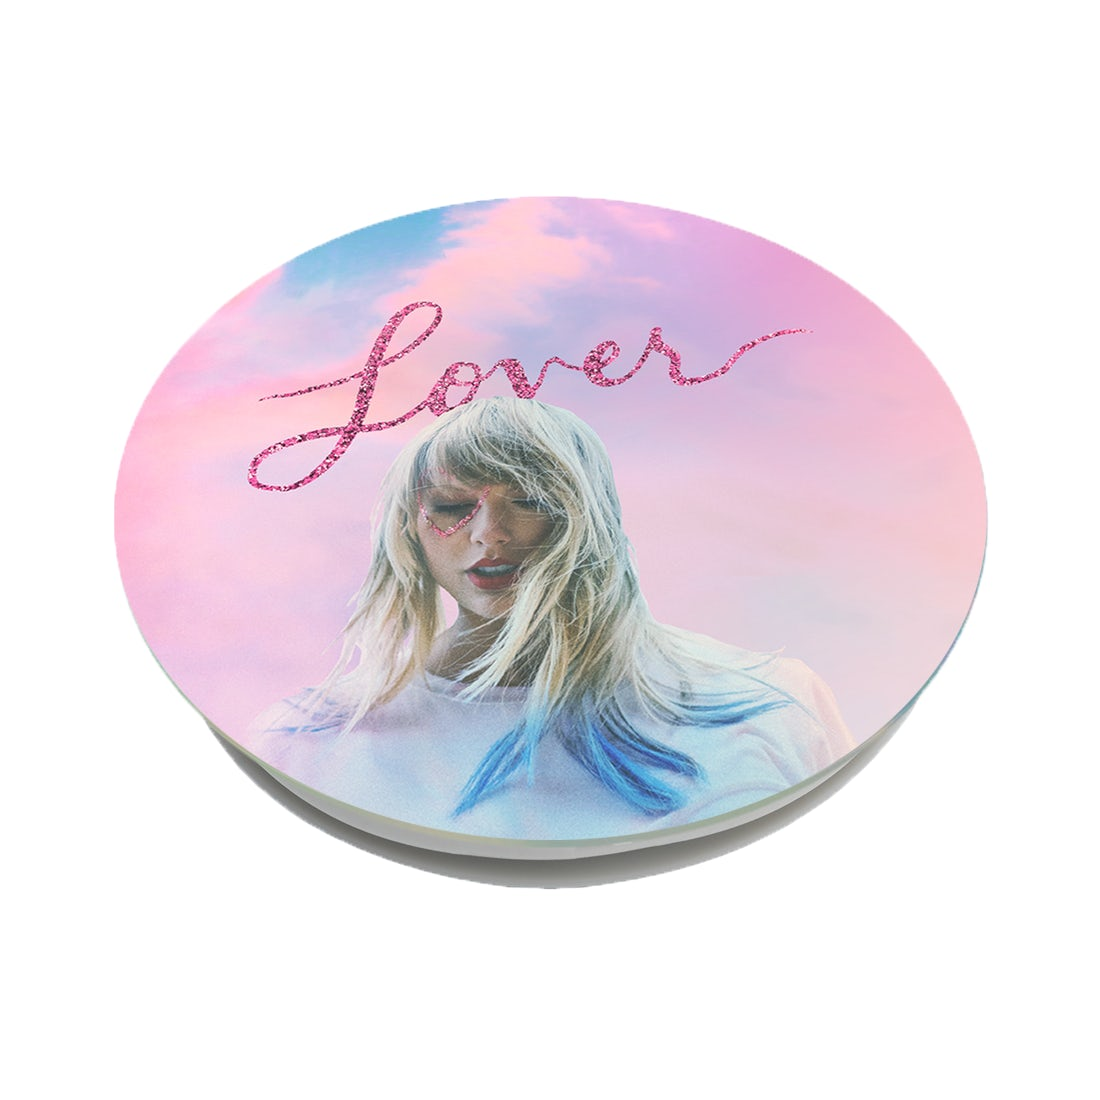 Taylor Swift Album Cover Phone Stand by Popsockets